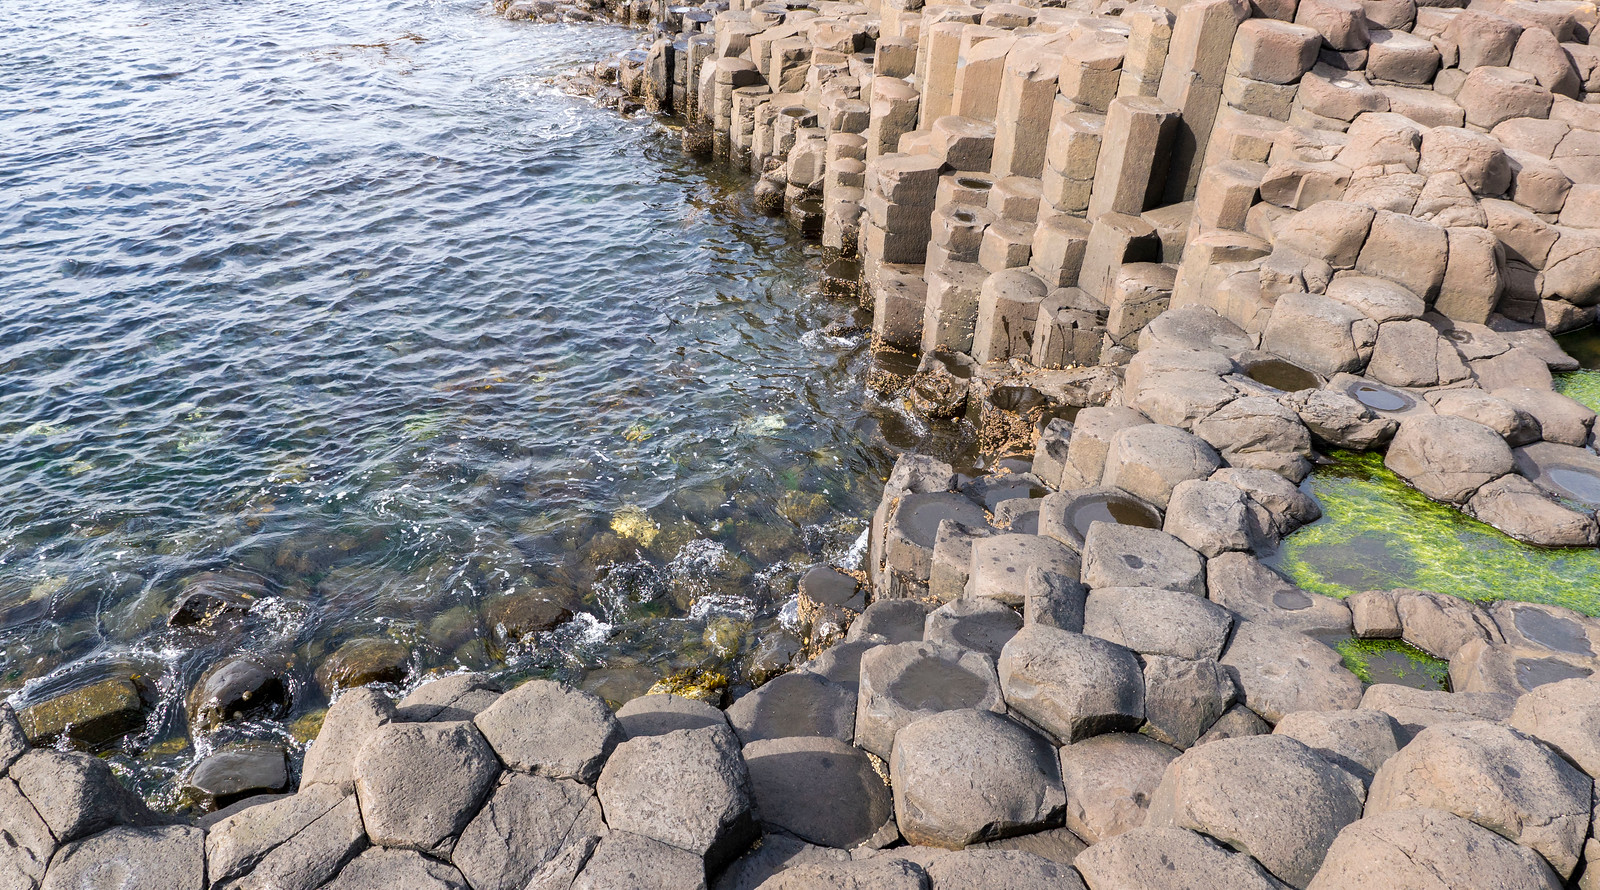 Giants Causeway Tour From Belfast - Self Drive Trip